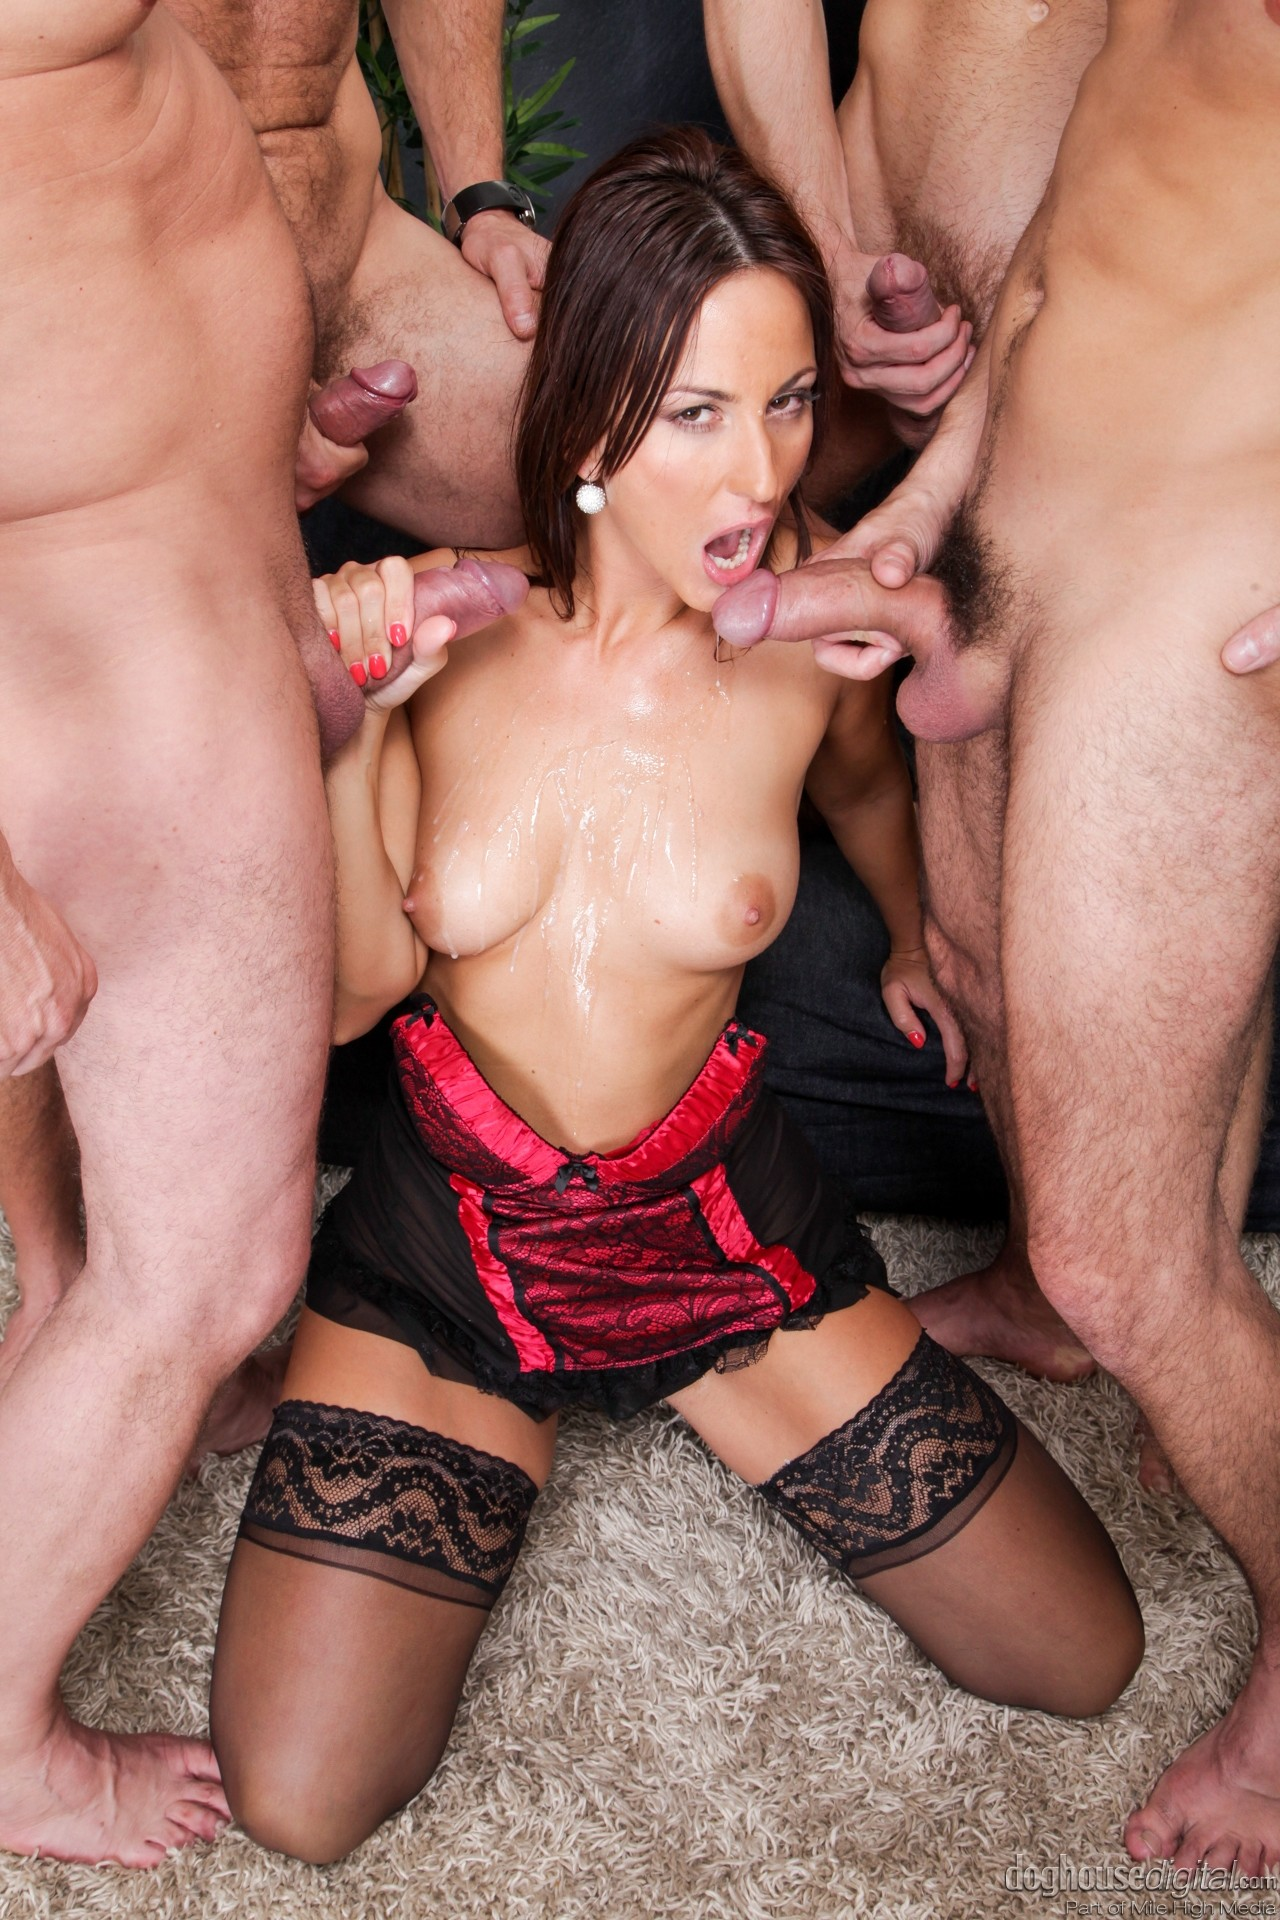 video-gang-bang-porn-actresses-girls